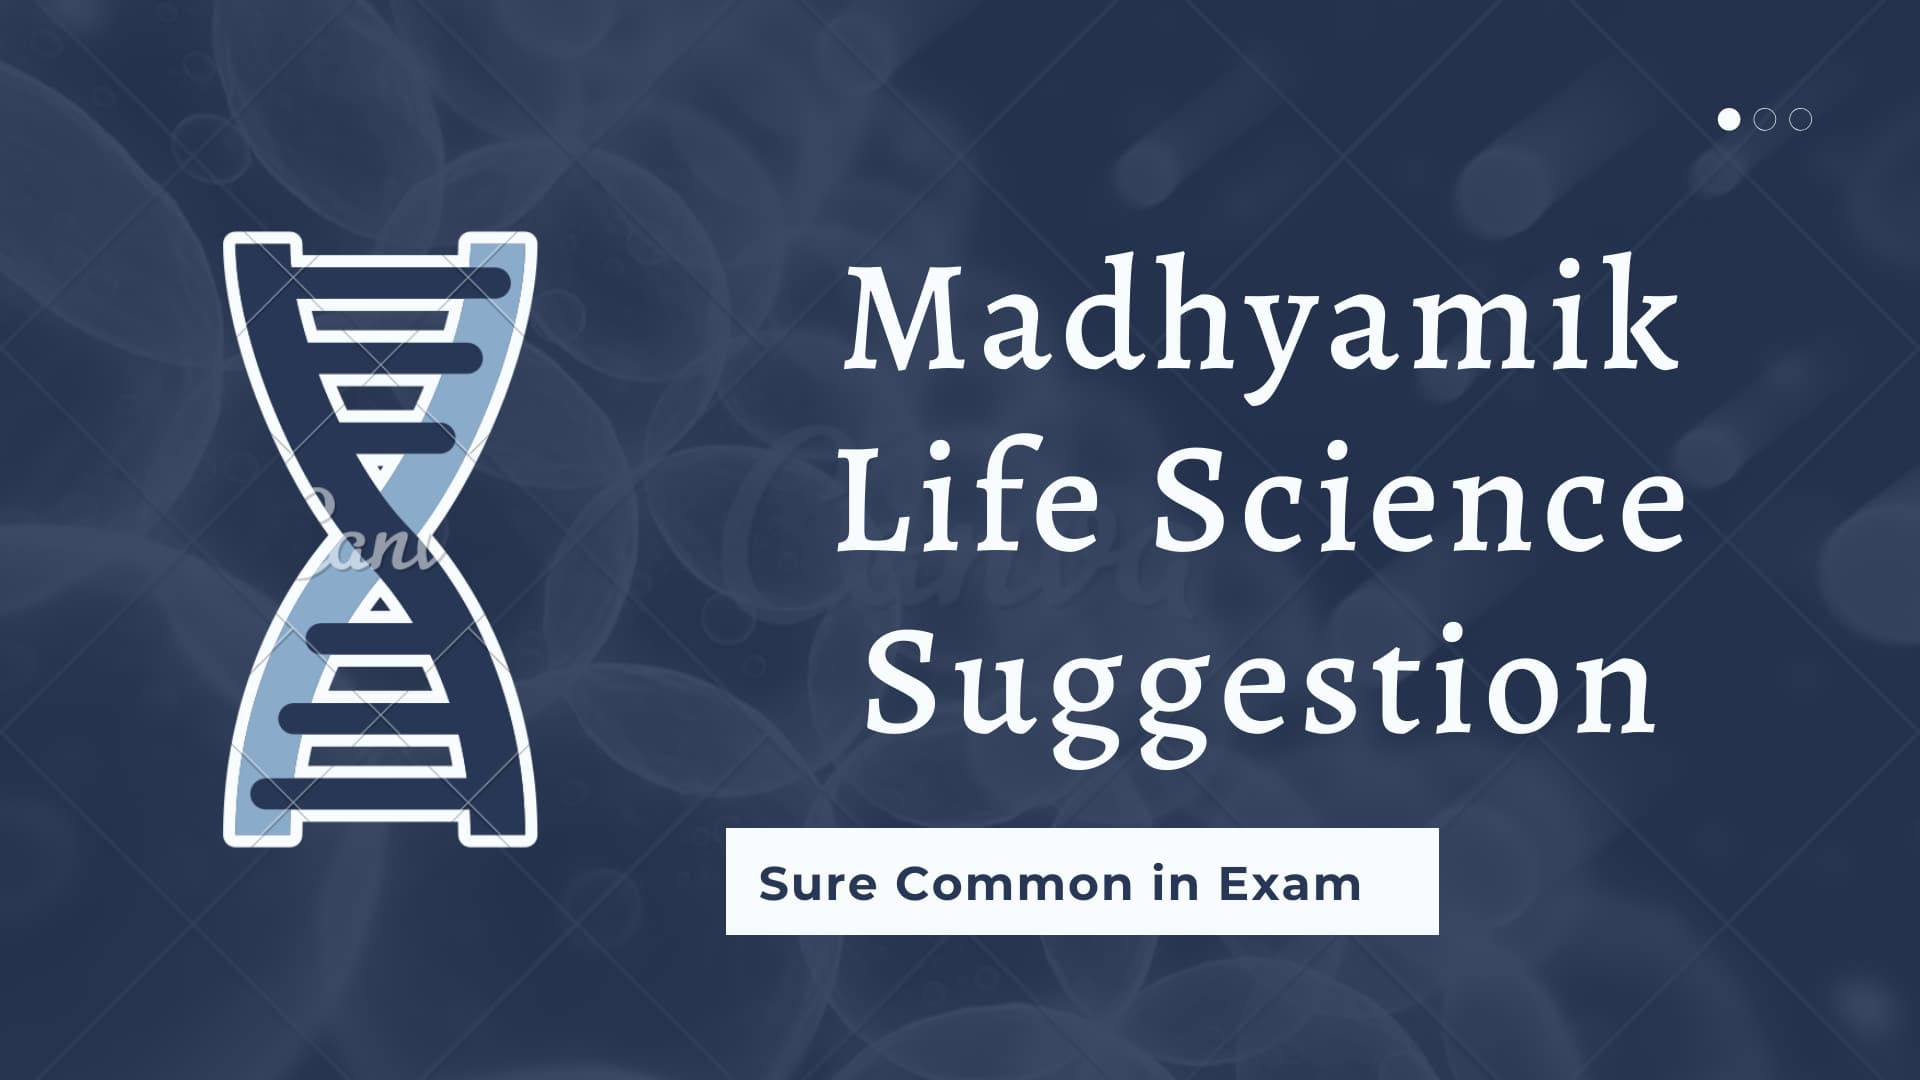 Madhyamik 2021 Life Science Suggestion